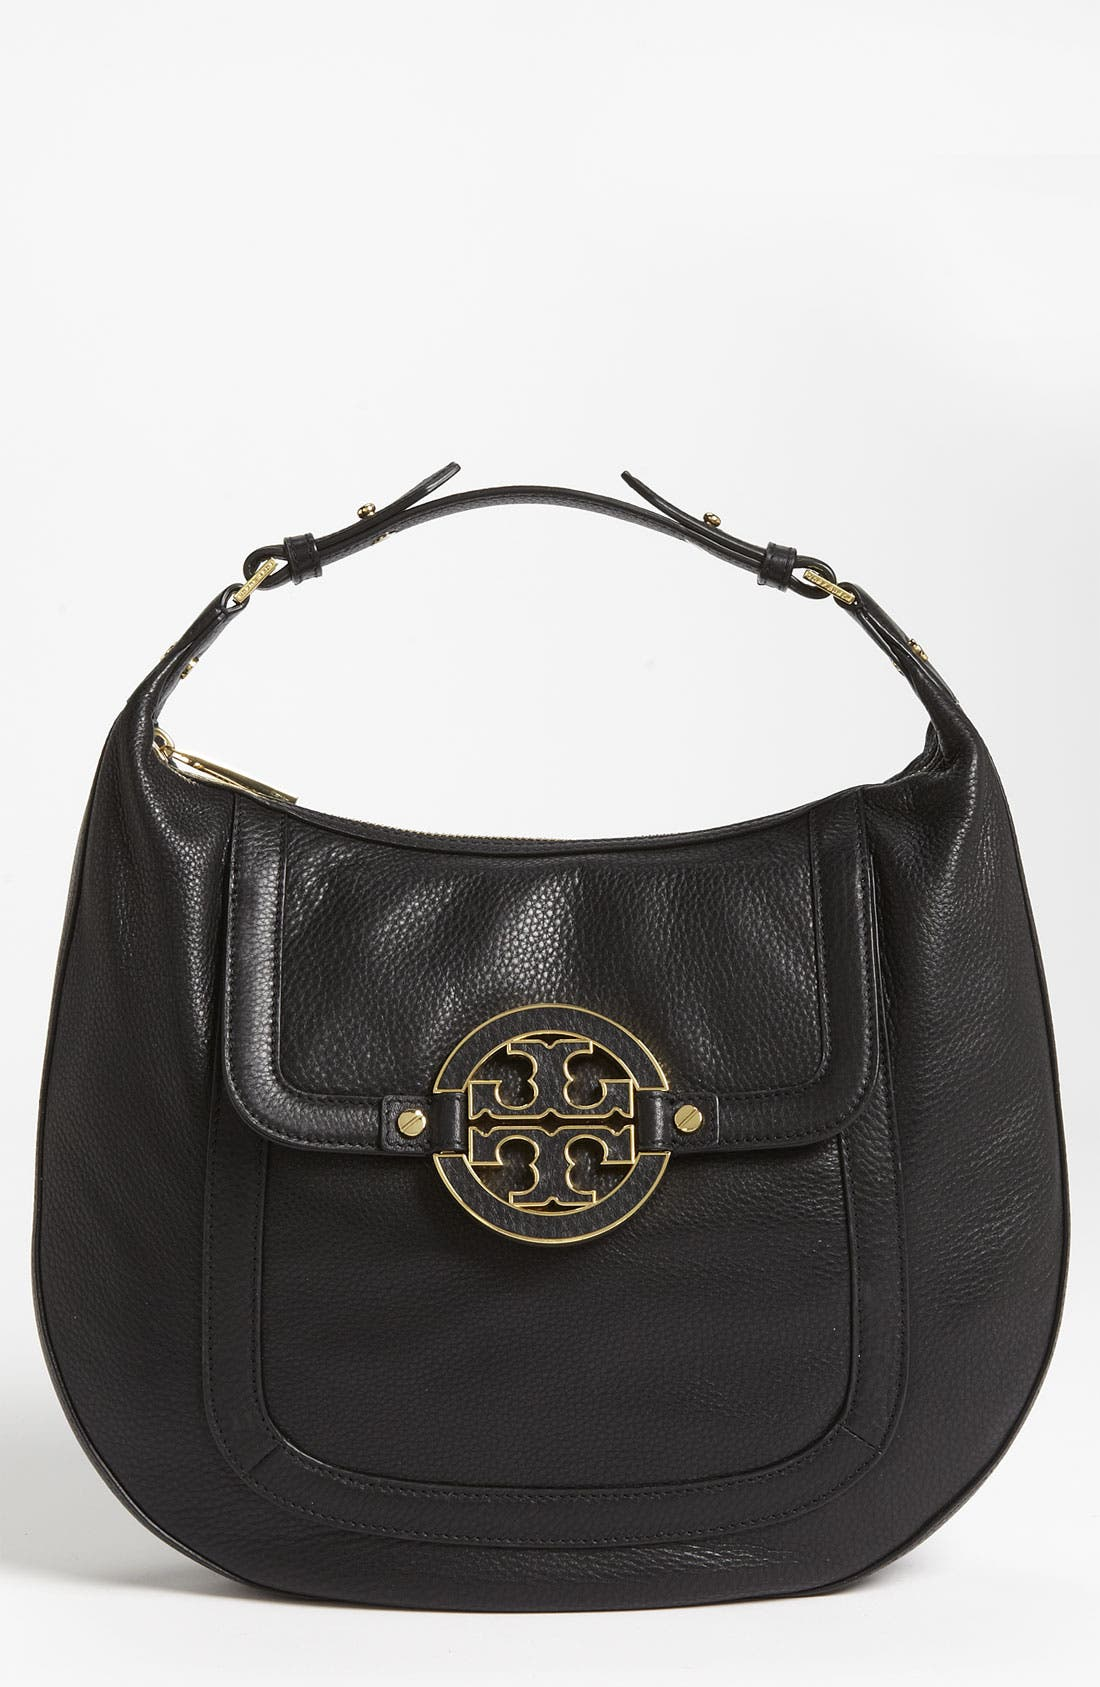 Main Image - Tory Burch 'Amanda - Mini' Flat Hobo